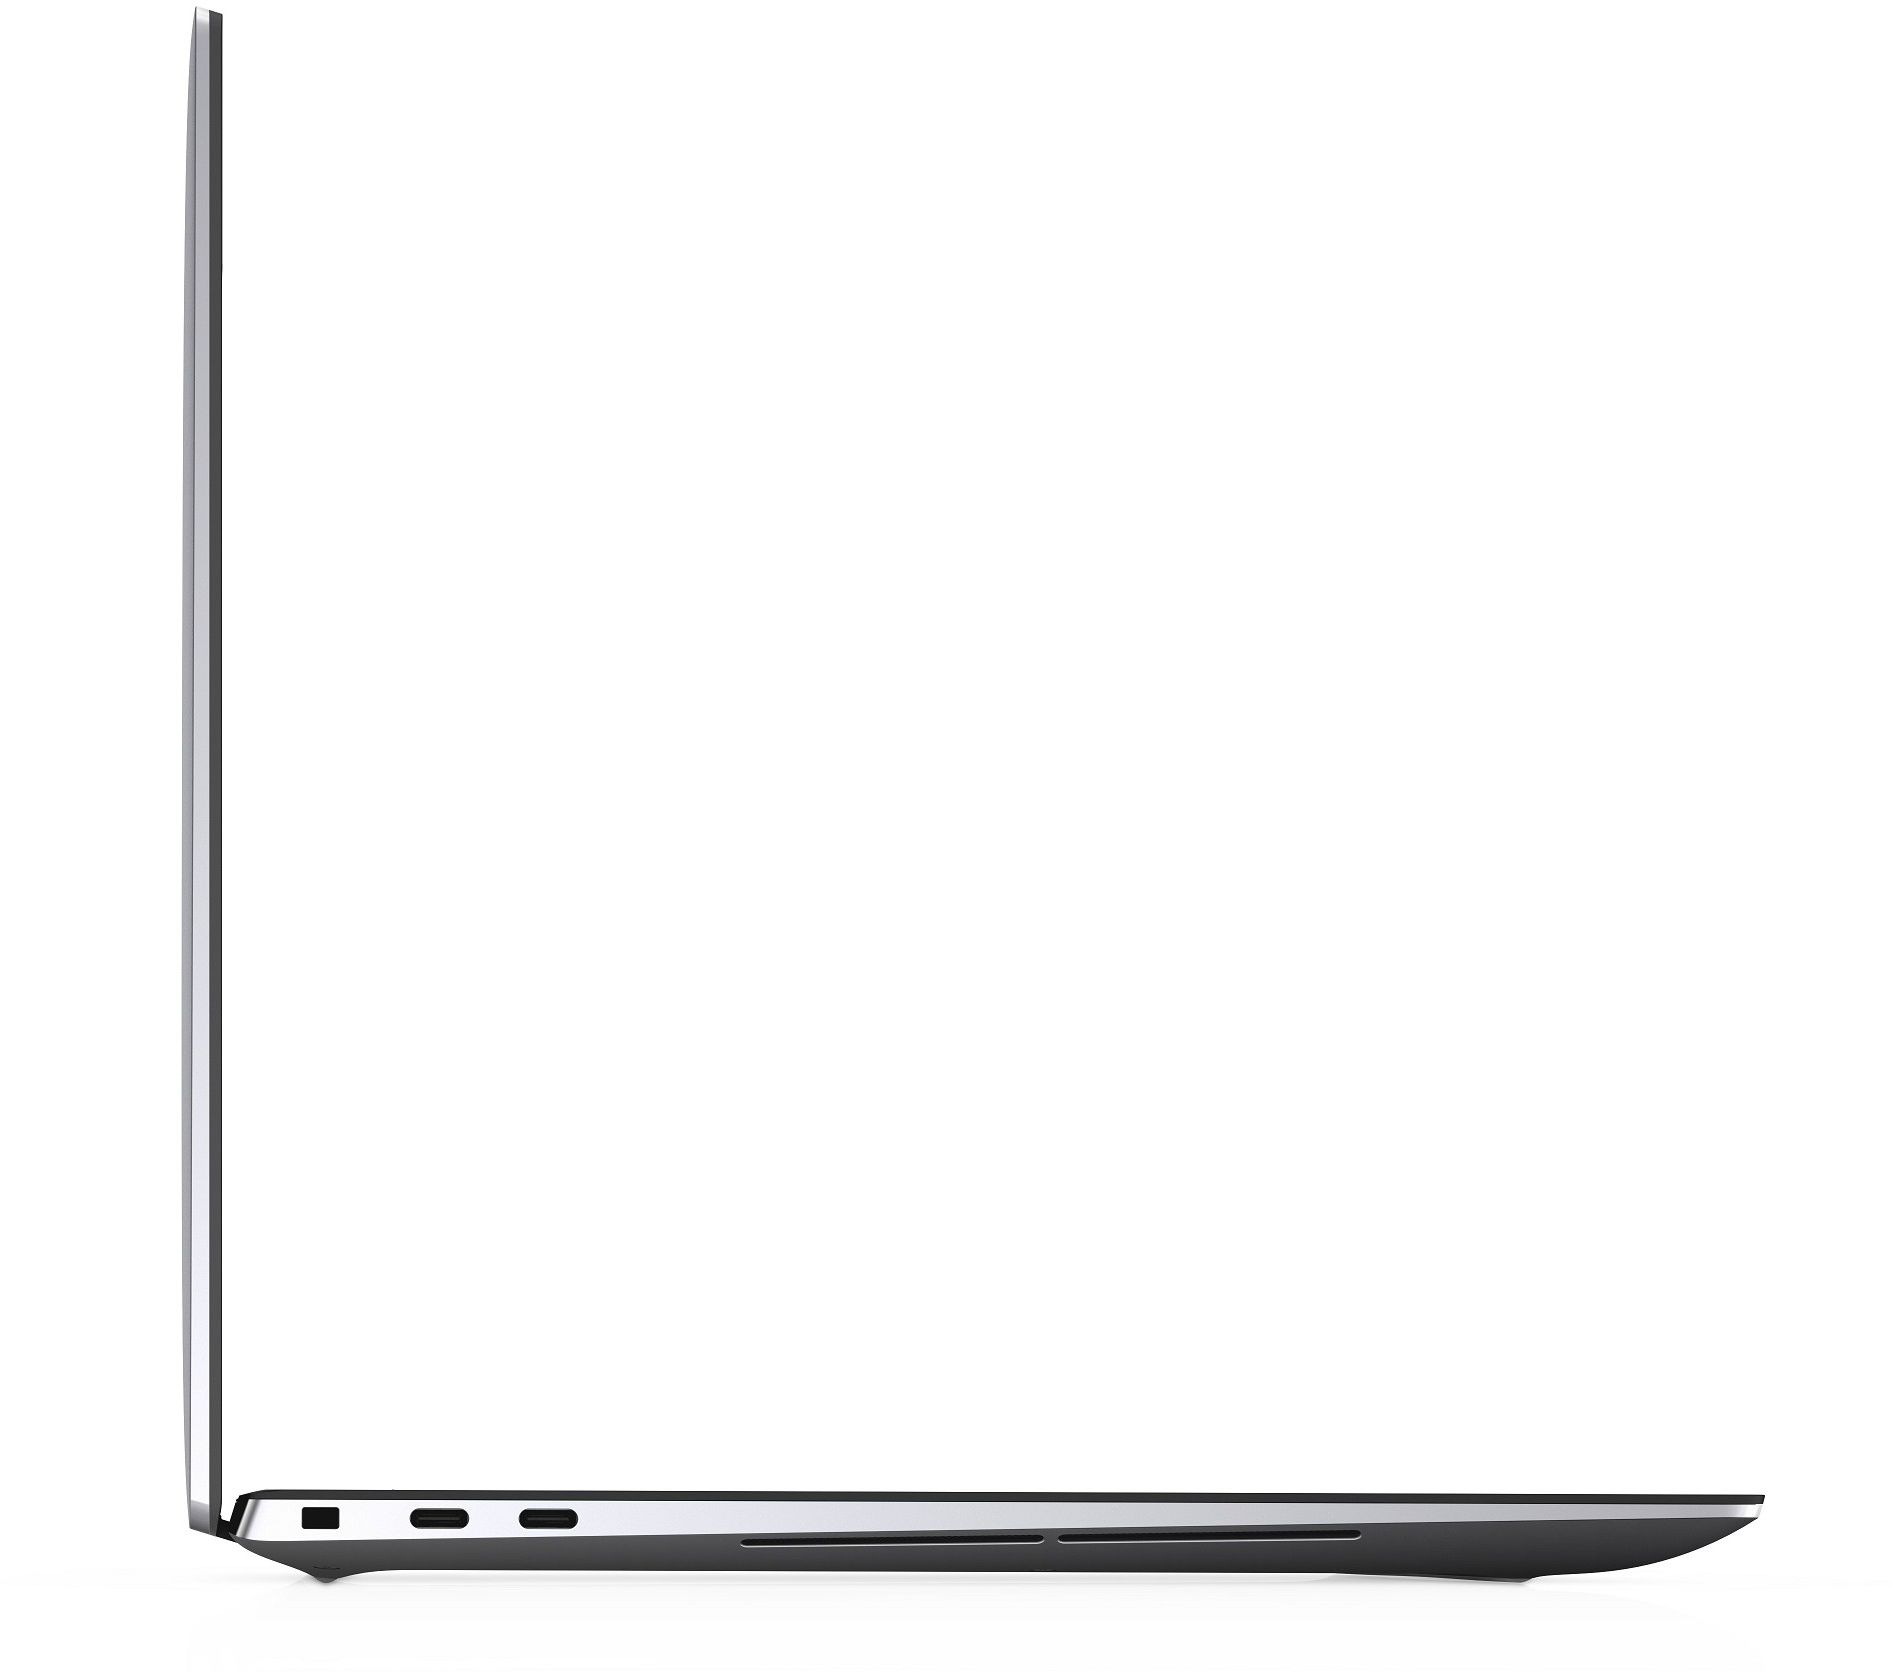 Laptop DELL Precision M5550 15,6 UHD Touch i7-10875H 64GB 2TB SSD T2000 vPro BK W10P 3YBWOS